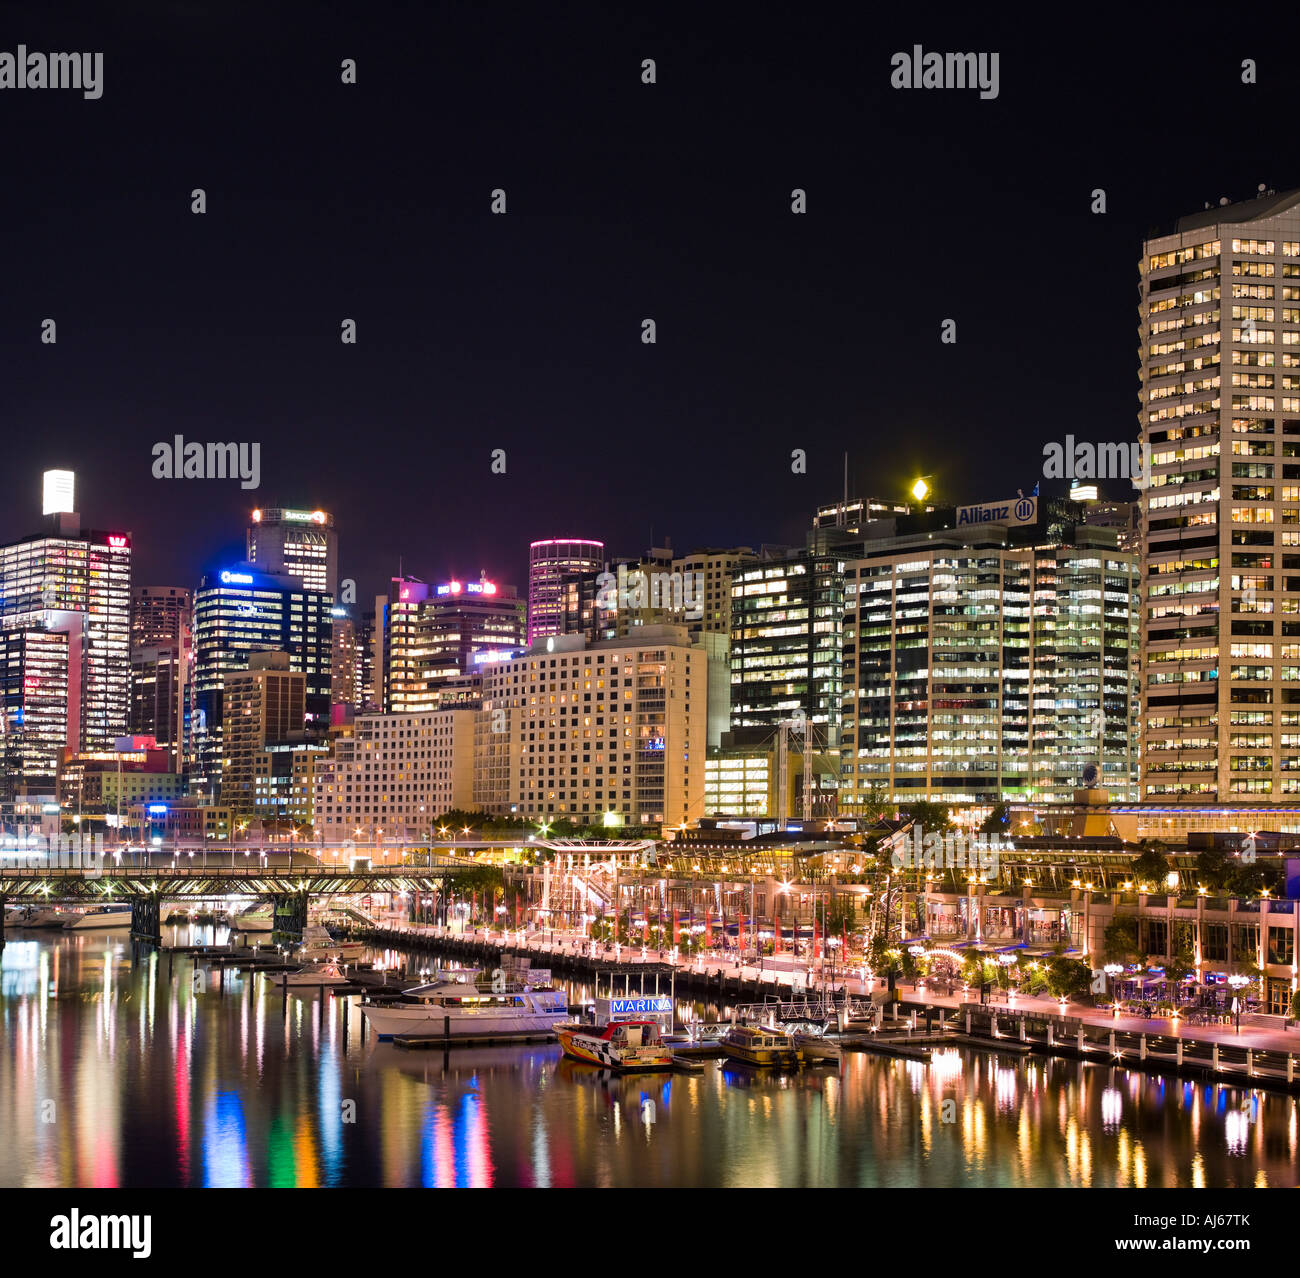 Darling Harbour Sydney Stockbild